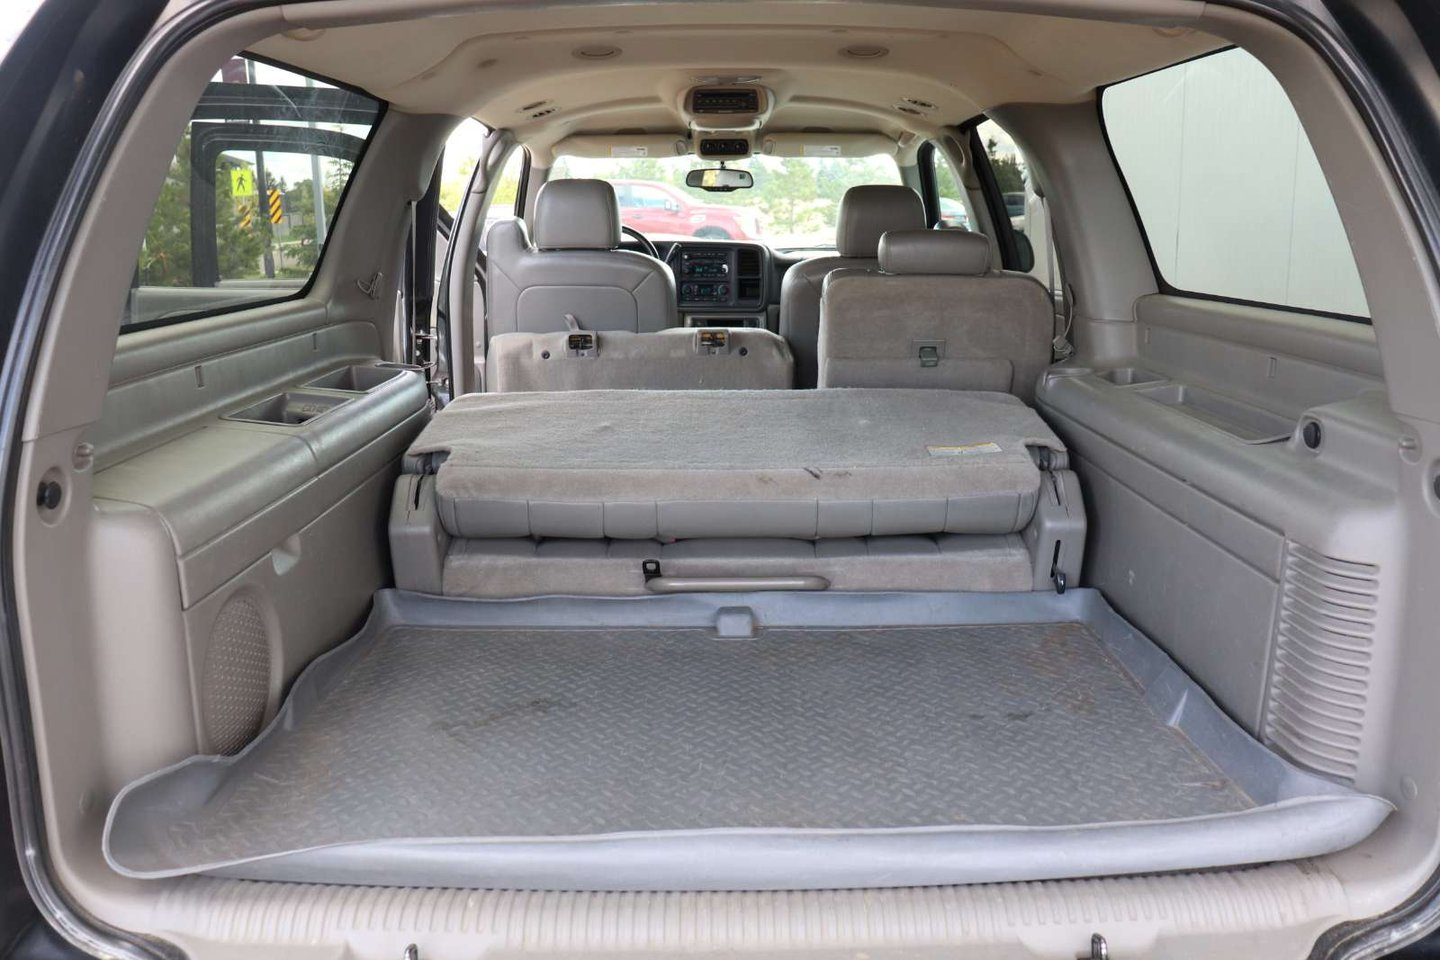 2005 Chevrolet Suburban  for sale in St. Albert, Alberta